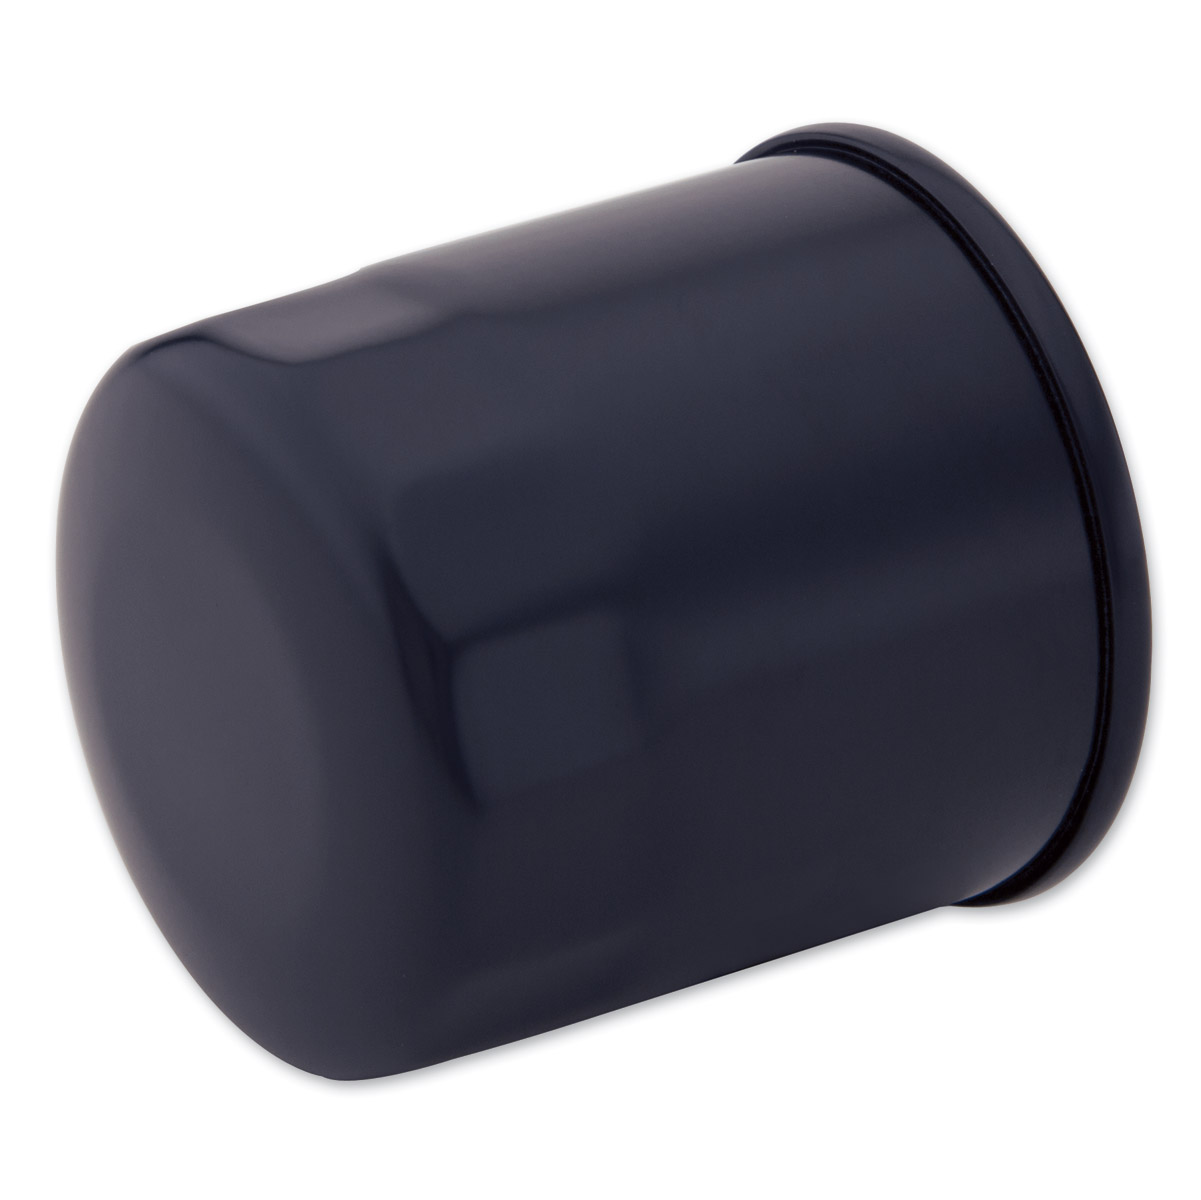 J&P Cycles® Black Oil Filter for Honda, Kawasaki and Yamaha